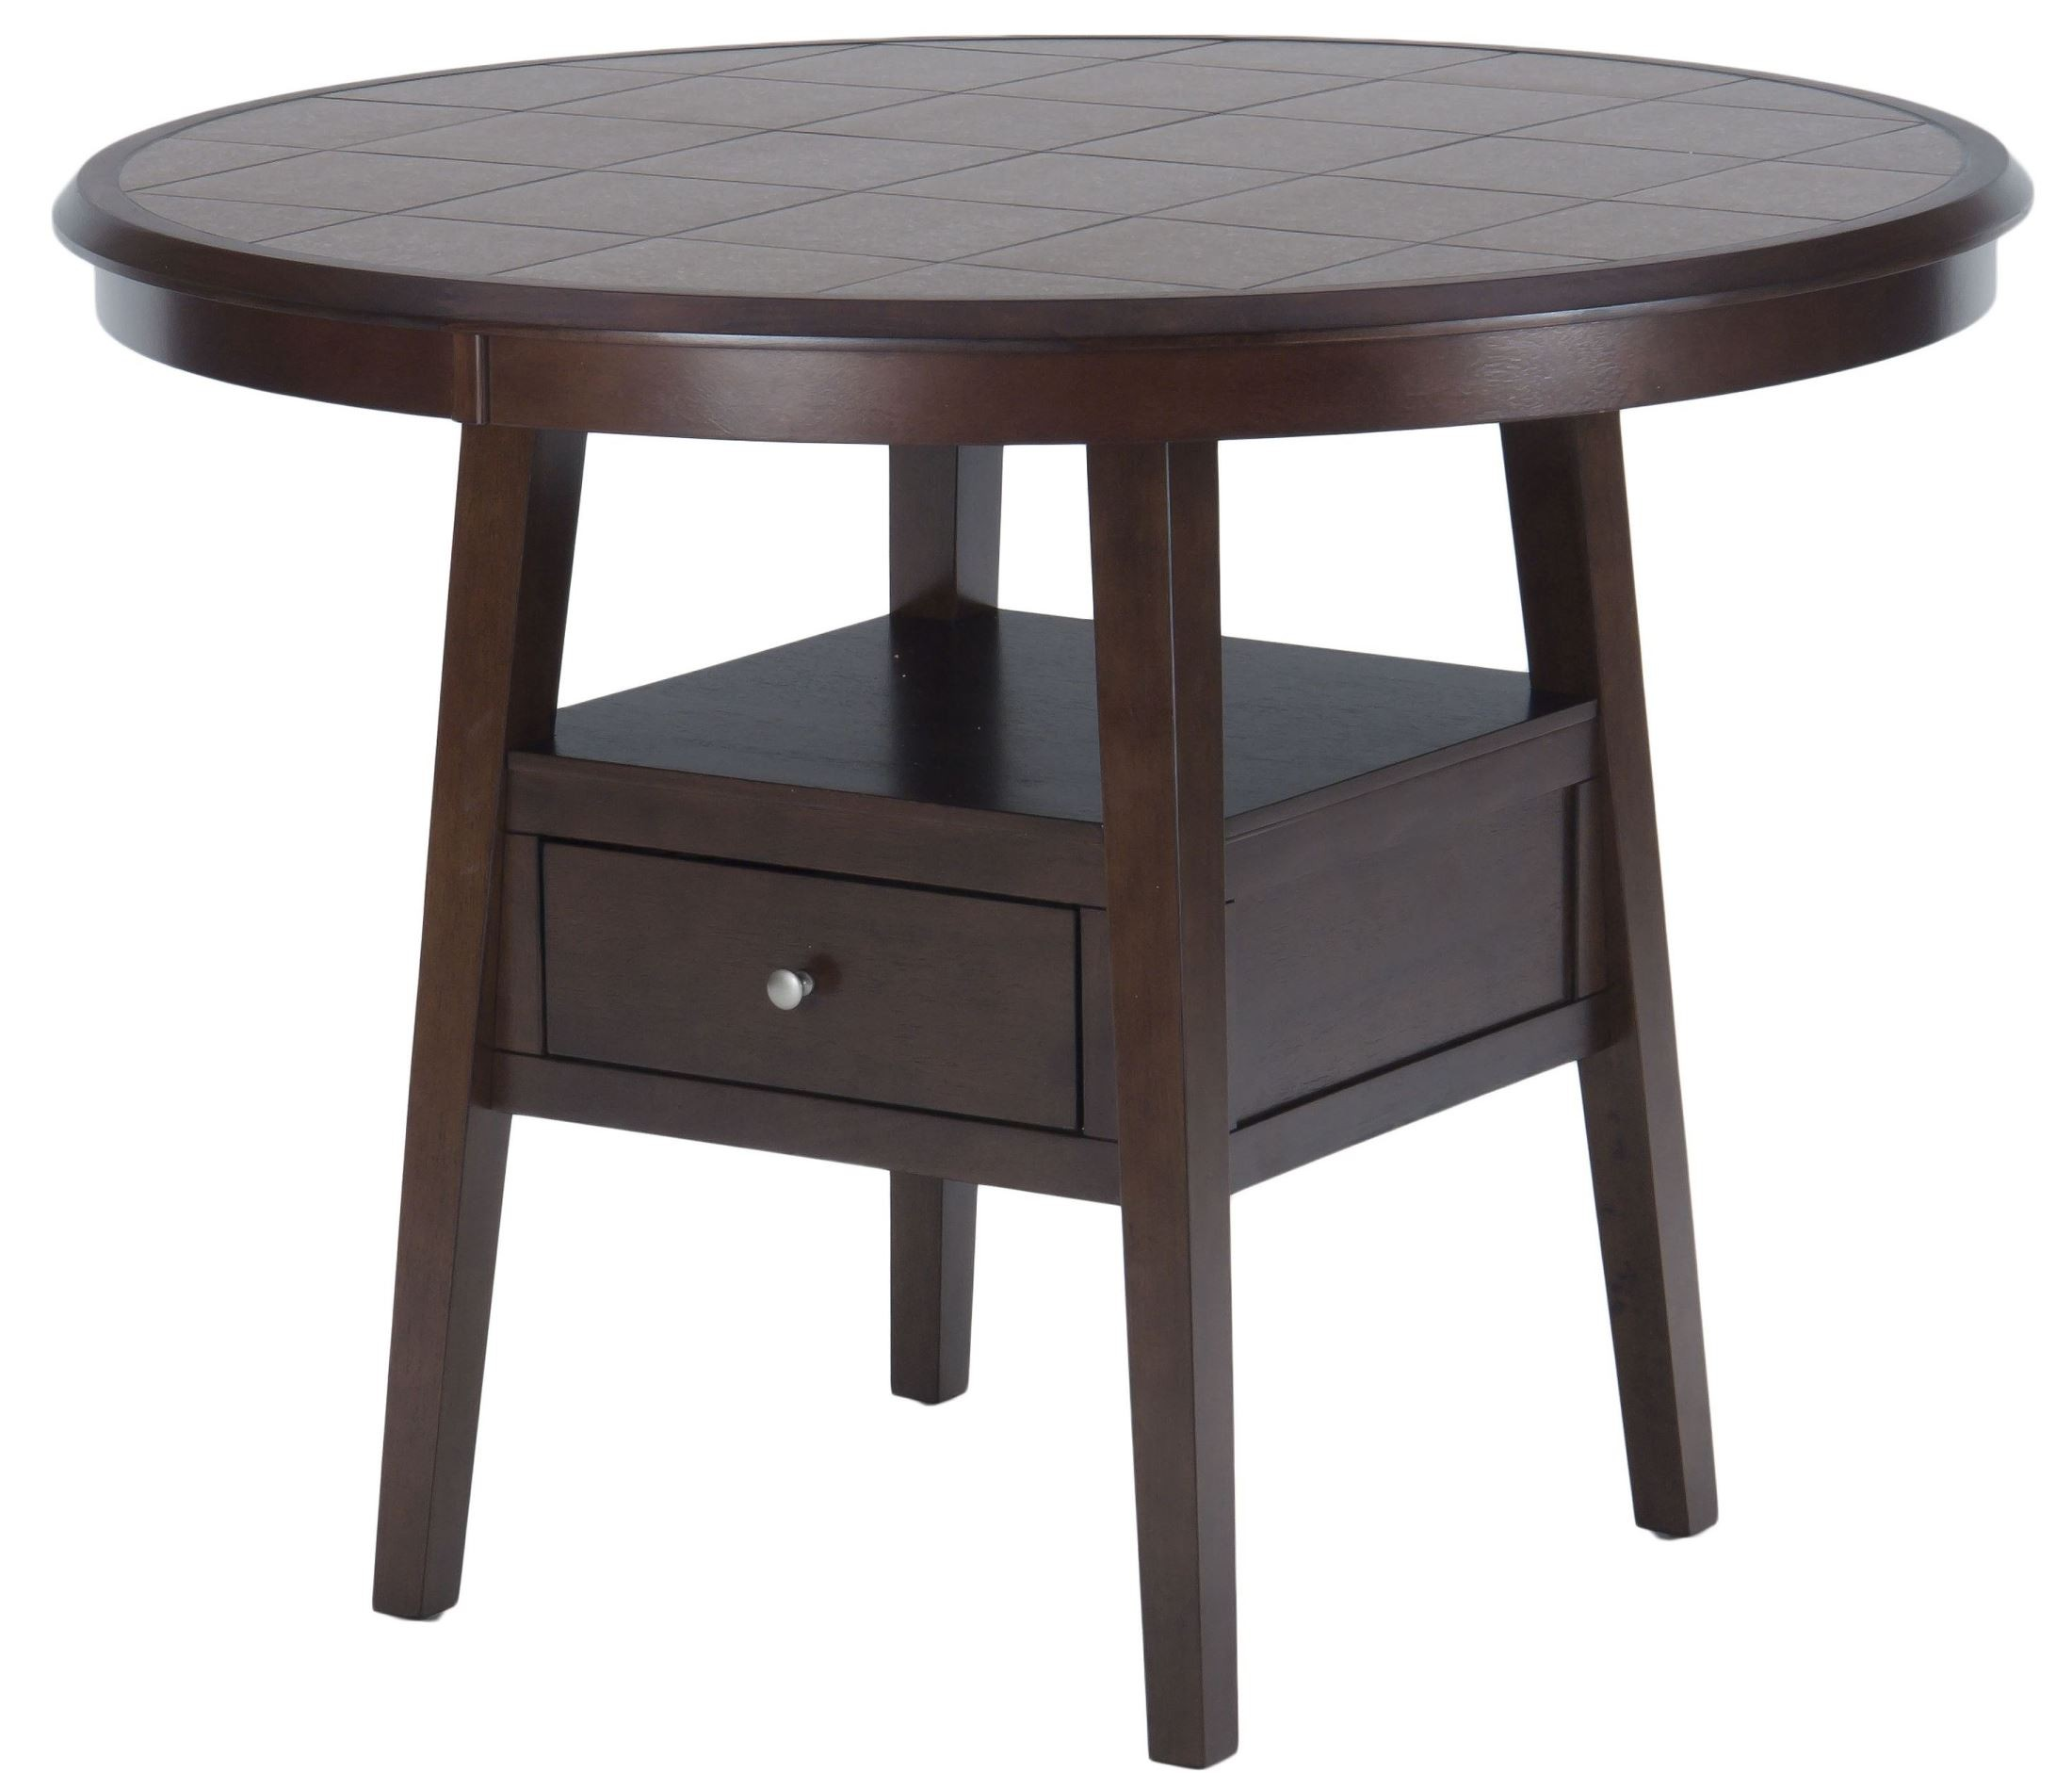 caleb brown 48 round counter height dining table 976 48 jofran. Black Bedroom Furniture Sets. Home Design Ideas